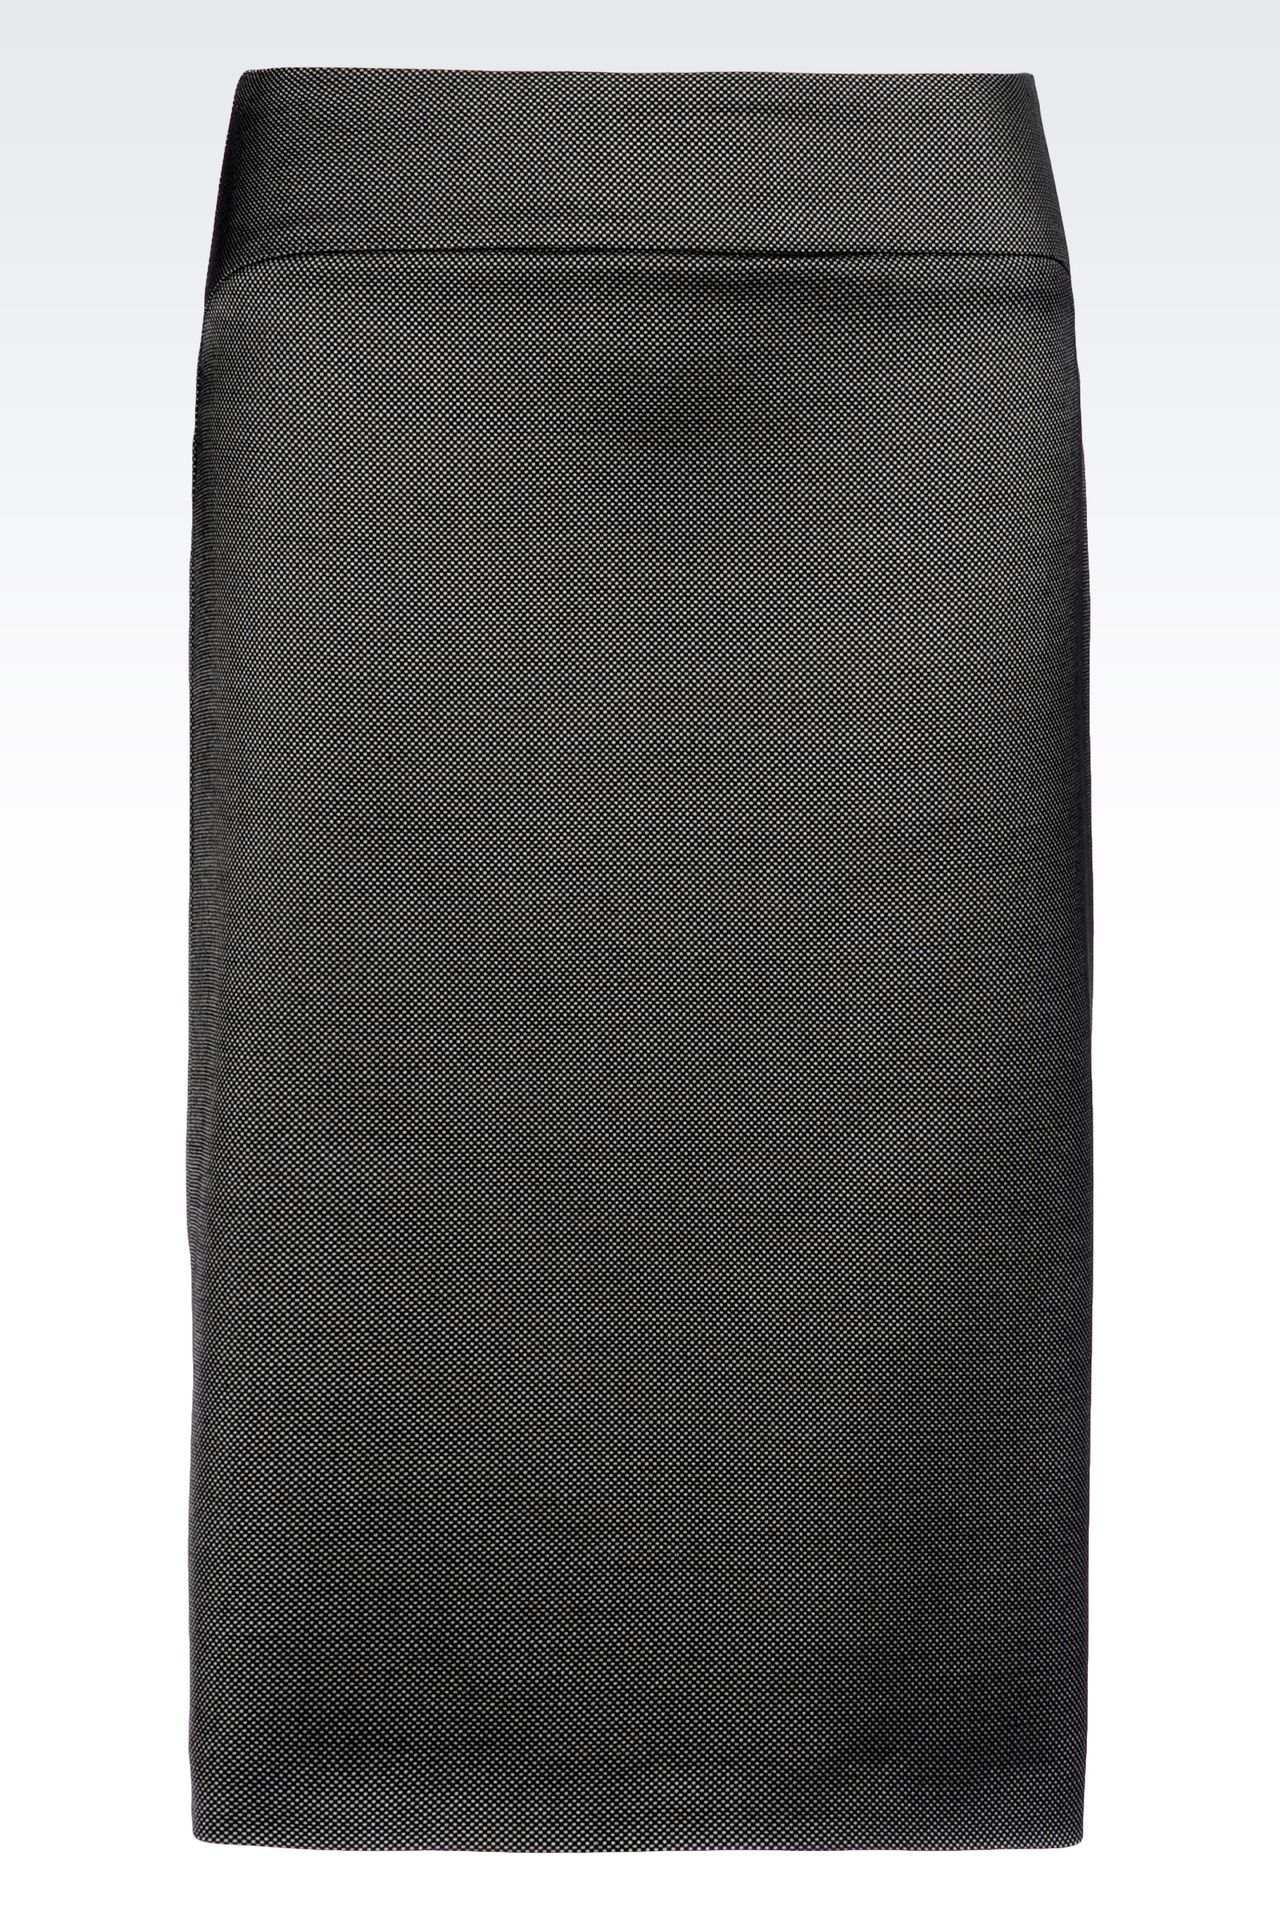 PENCIL SKIRT IN WOOL BLEND: Knee length skirts Women by Armani - 0